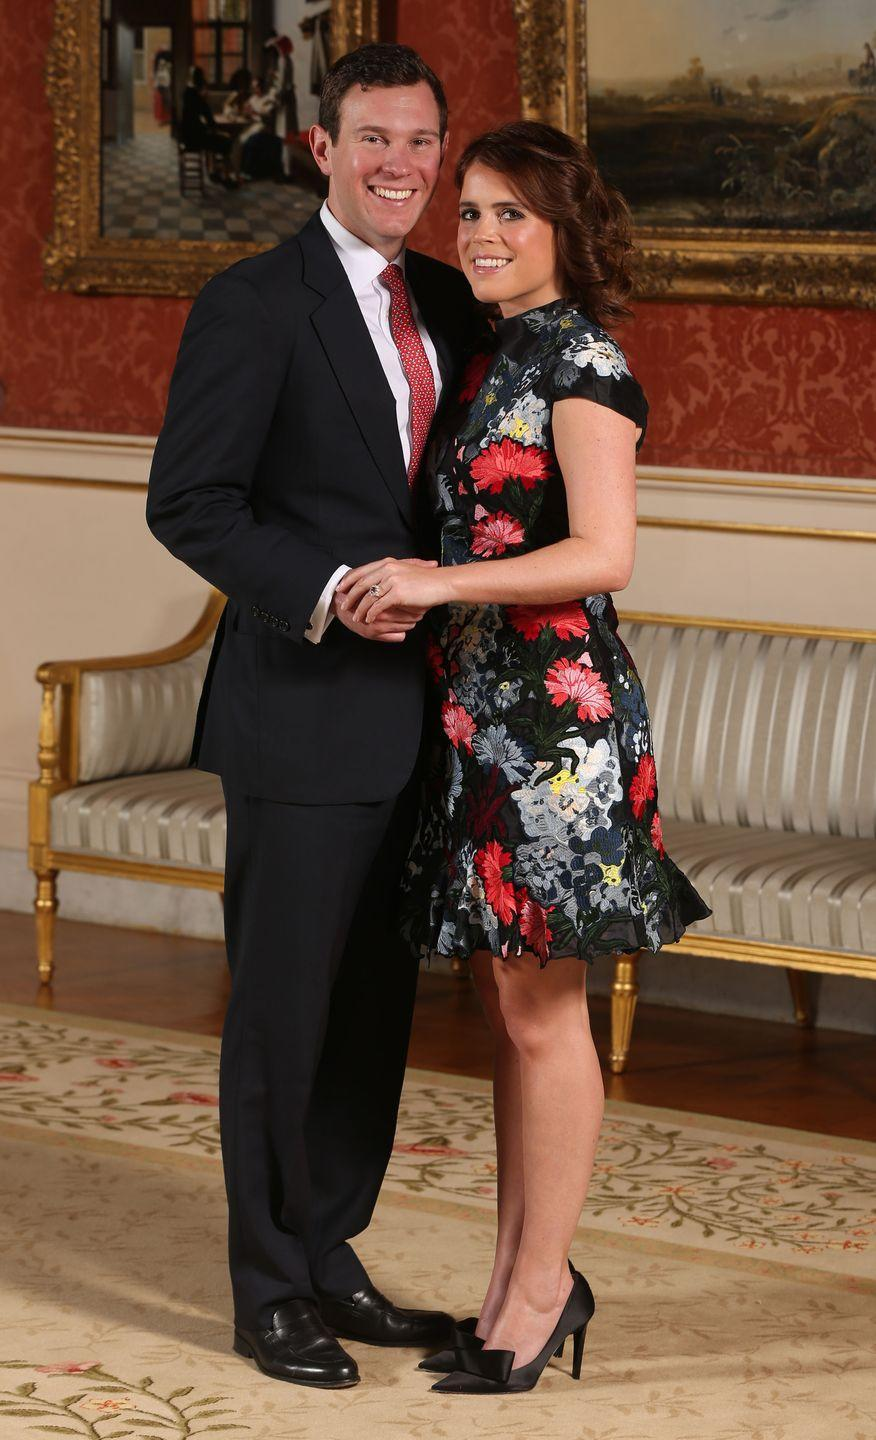 """<p>Princess Eugenie officially announced her engagement to Jack Brooksbank in January 2018, and their wedding followed later that year. But according to a <em><a href=""""https://www.vanityfair.com/style/2018/09/princess-eugenie-wedding-engagement-delayed"""" rel=""""nofollow noopener"""" target=""""_blank"""" data-ylk=""""slk:Vanity Fair"""" class=""""link rapid-noclick-resp"""">Vanity Fair</a></em> source, """"It's my understanding that Eugenie and Jack decided some time ago that they wanted to get married, and there was some talk about a wedding in 2017, but they had to wait for Harry to go first."""" Basically, Prince Harry <a href=""""https://www.harpersbazaar.com/celebrity/latest/a23384923/princess-eugenie-delayed-engagement/"""" rel=""""nofollow noopener"""" target=""""_blank"""" data-ylk=""""slk:outranked his cousin"""" class=""""link rapid-noclick-resp"""">outranked his cousin</a>, so his engagement to Meghan Markle was announced first, and their wedding took place before Eugenie's.</p>"""